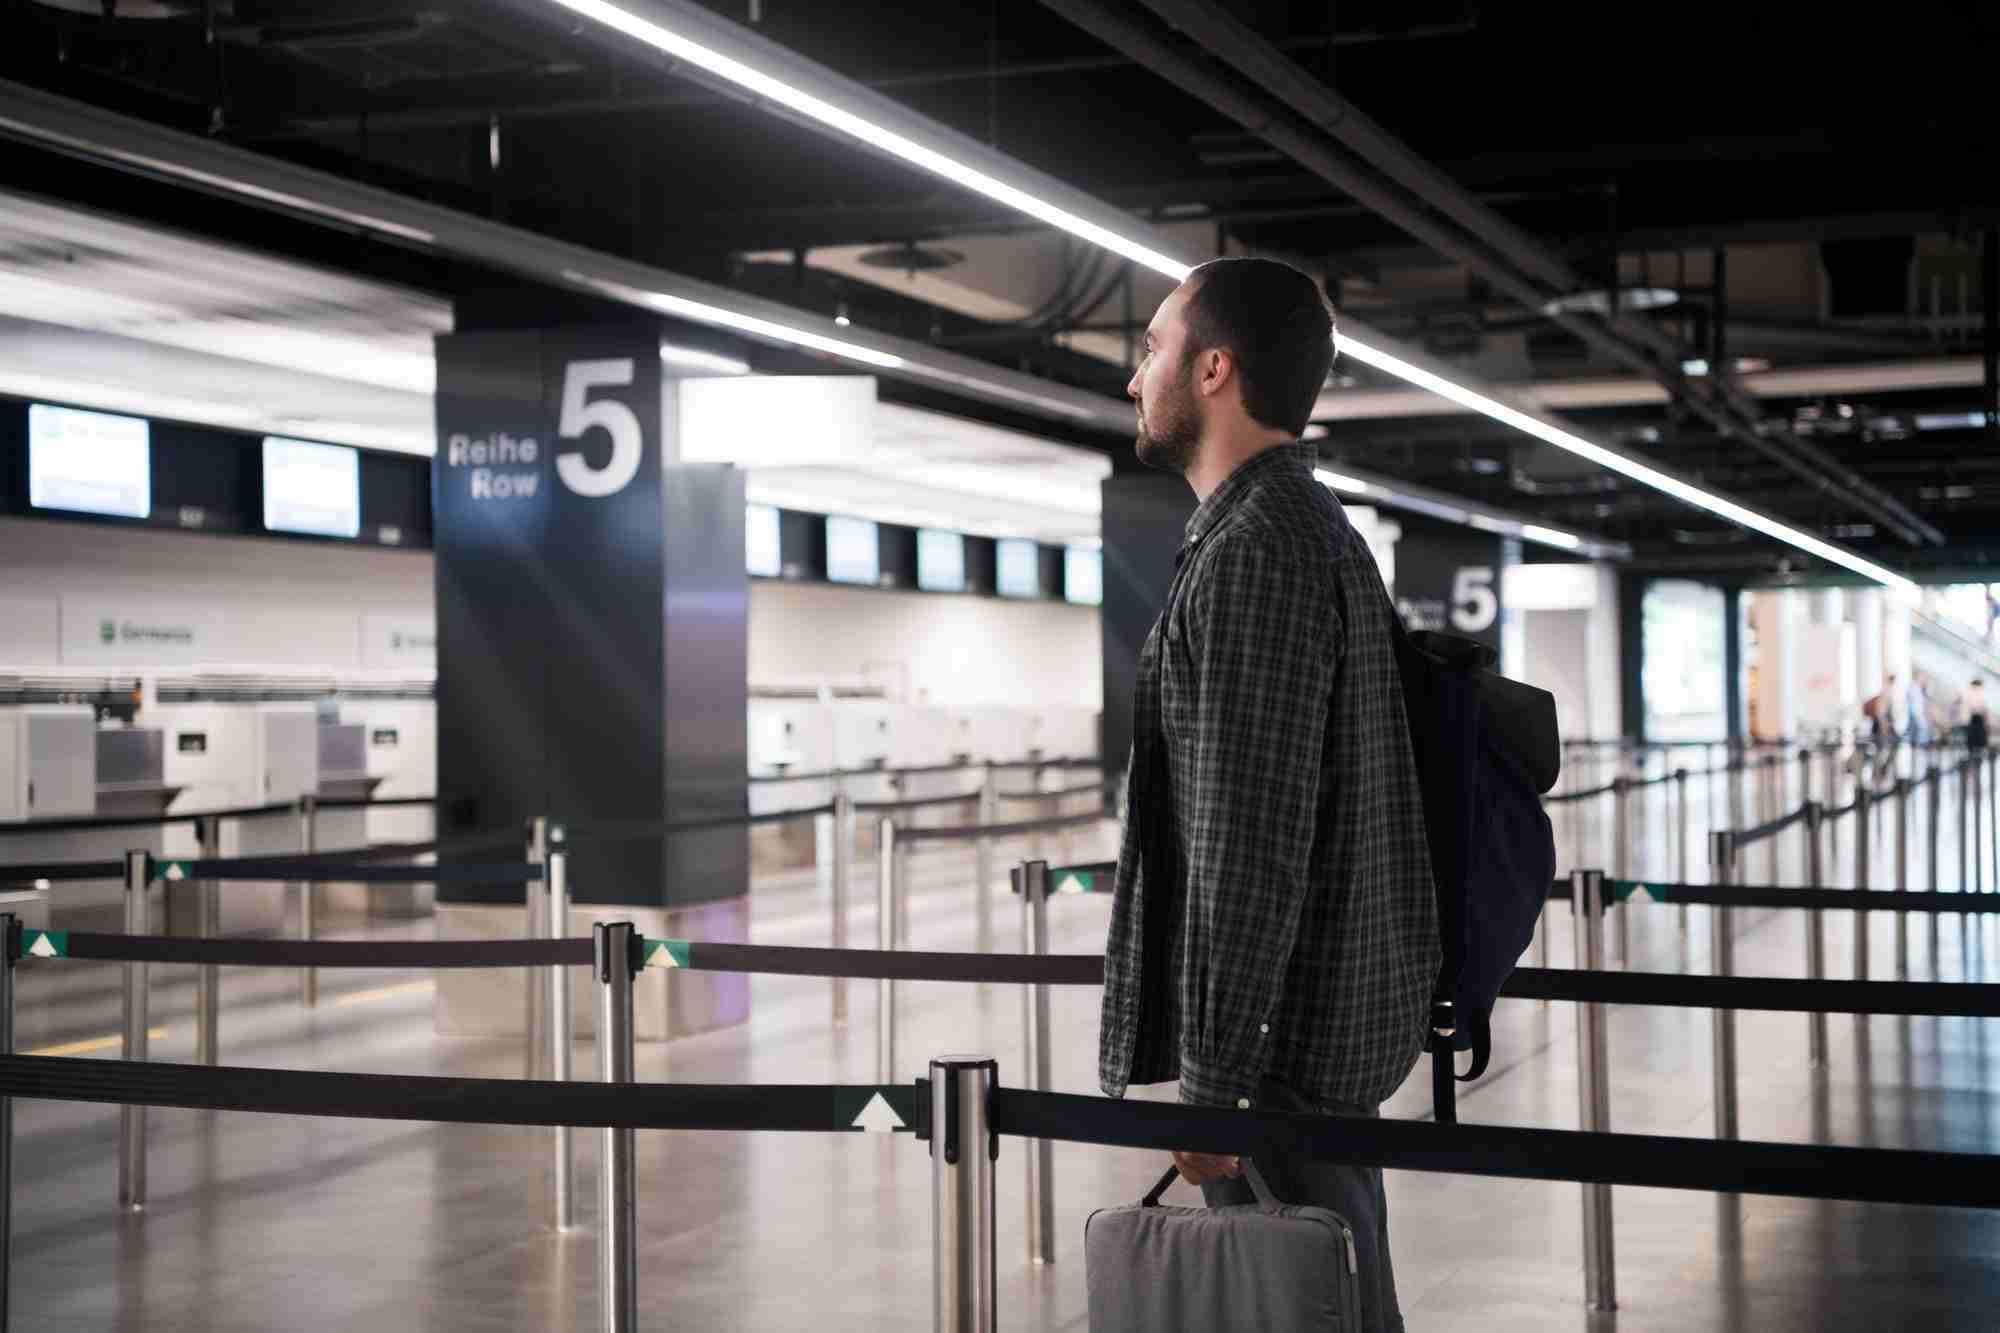 Young man with his luggage and backpack using smartphone while waiting for airline flight in the